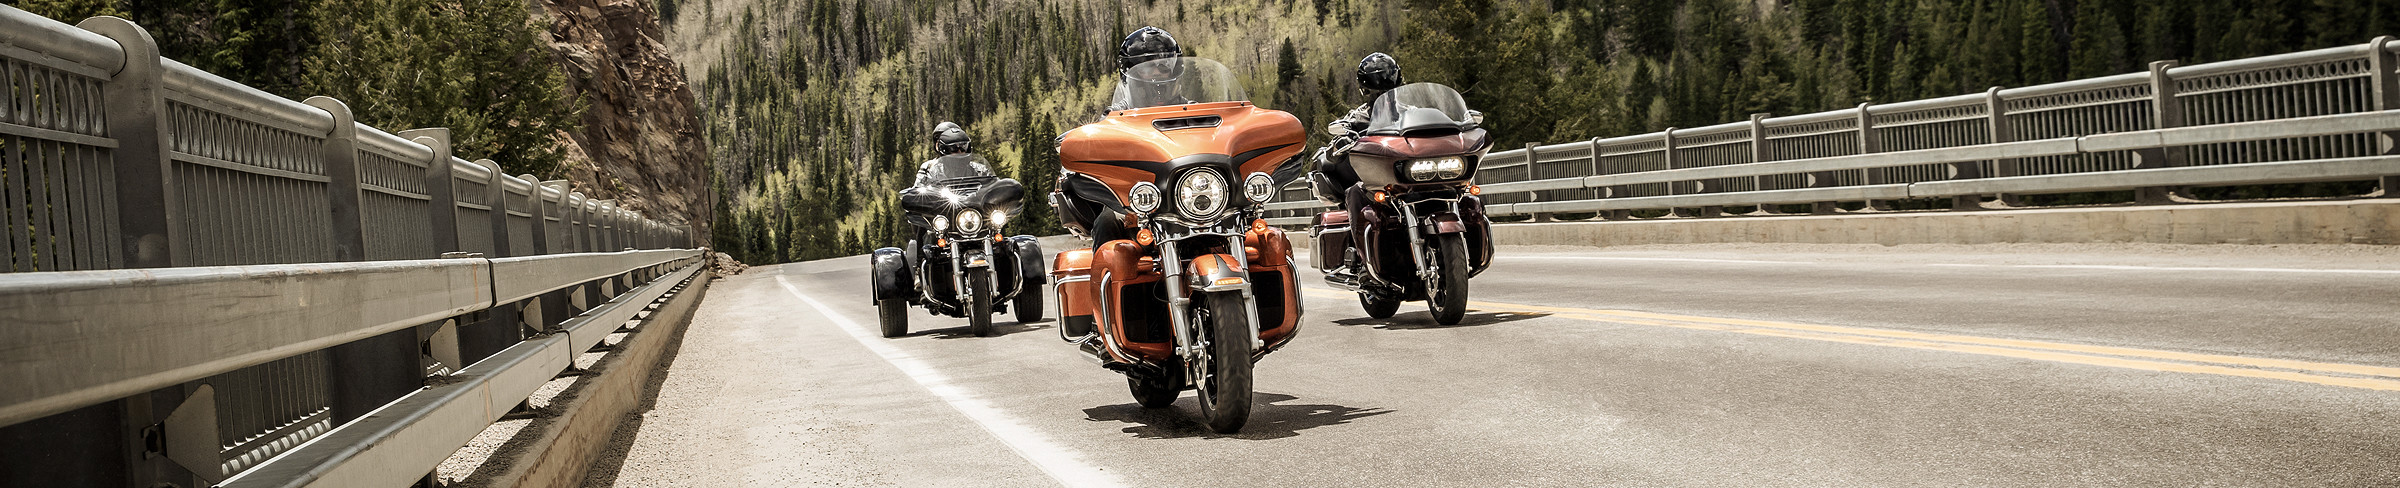 Used Harley-Davidson Trike Tri Glide Motorcycles for sale near Mansfield, Ohio